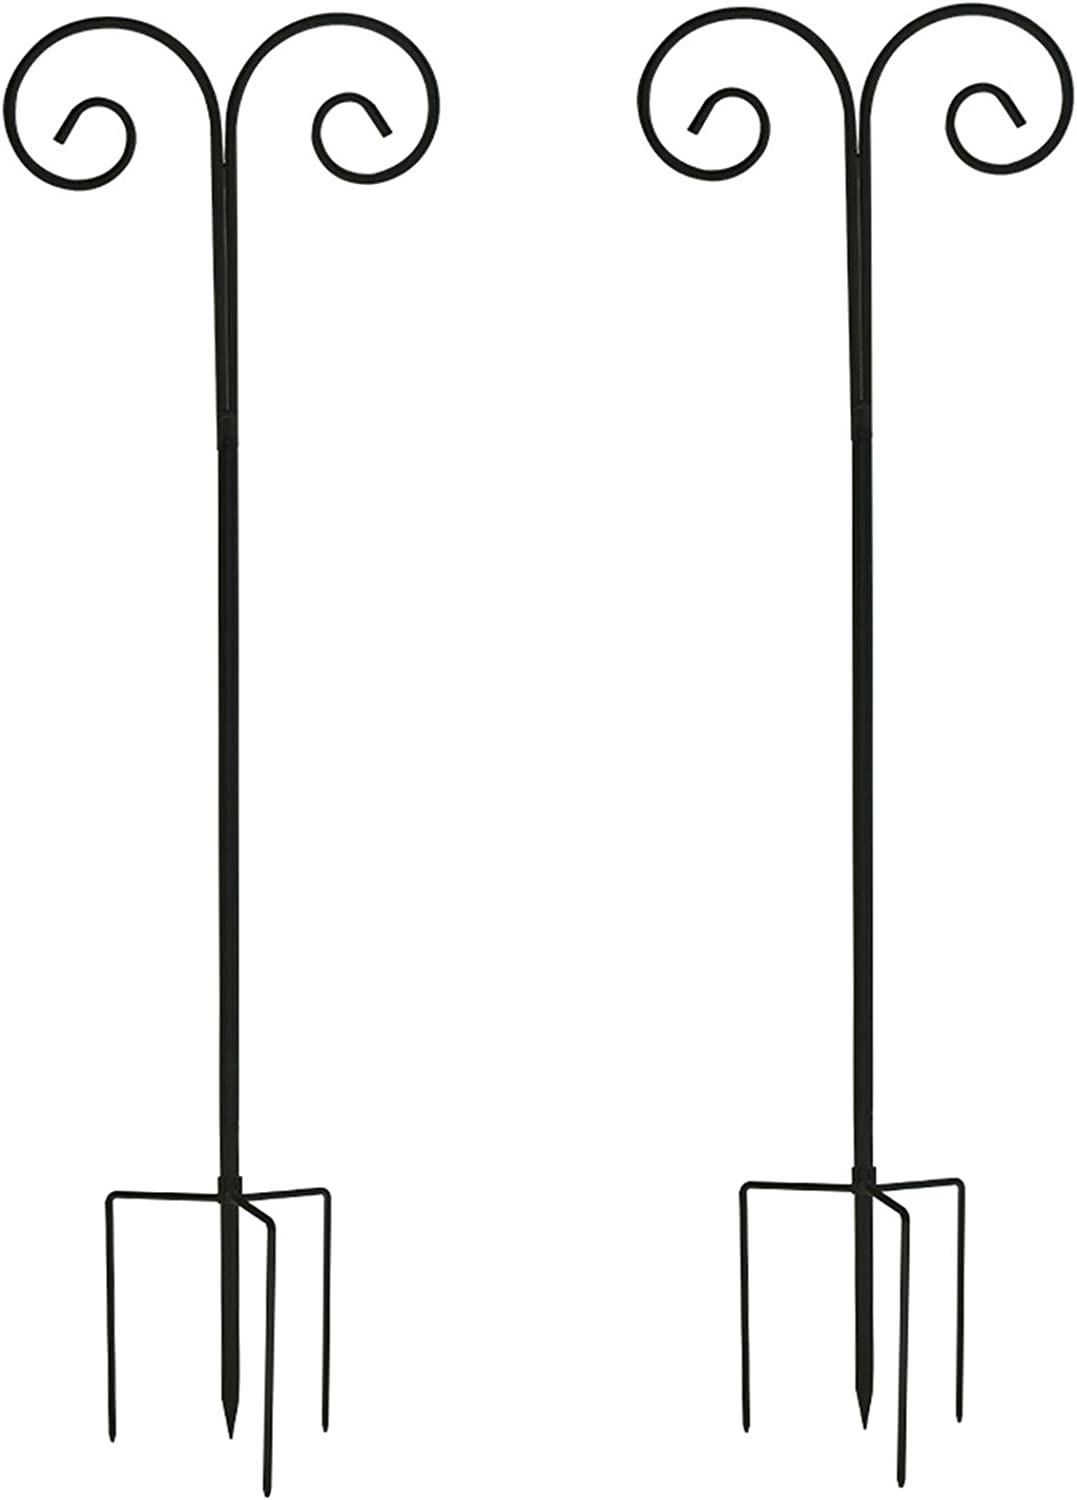 unho Double Shepherds Hook Adjustable Height 55-95in, 7/10in Thick, 2 Pack Heavy Duty Garden Pole Metal Stake Hangers for Plant Baskets, Bird Feeders, Lights and Wedding Decor(Black)